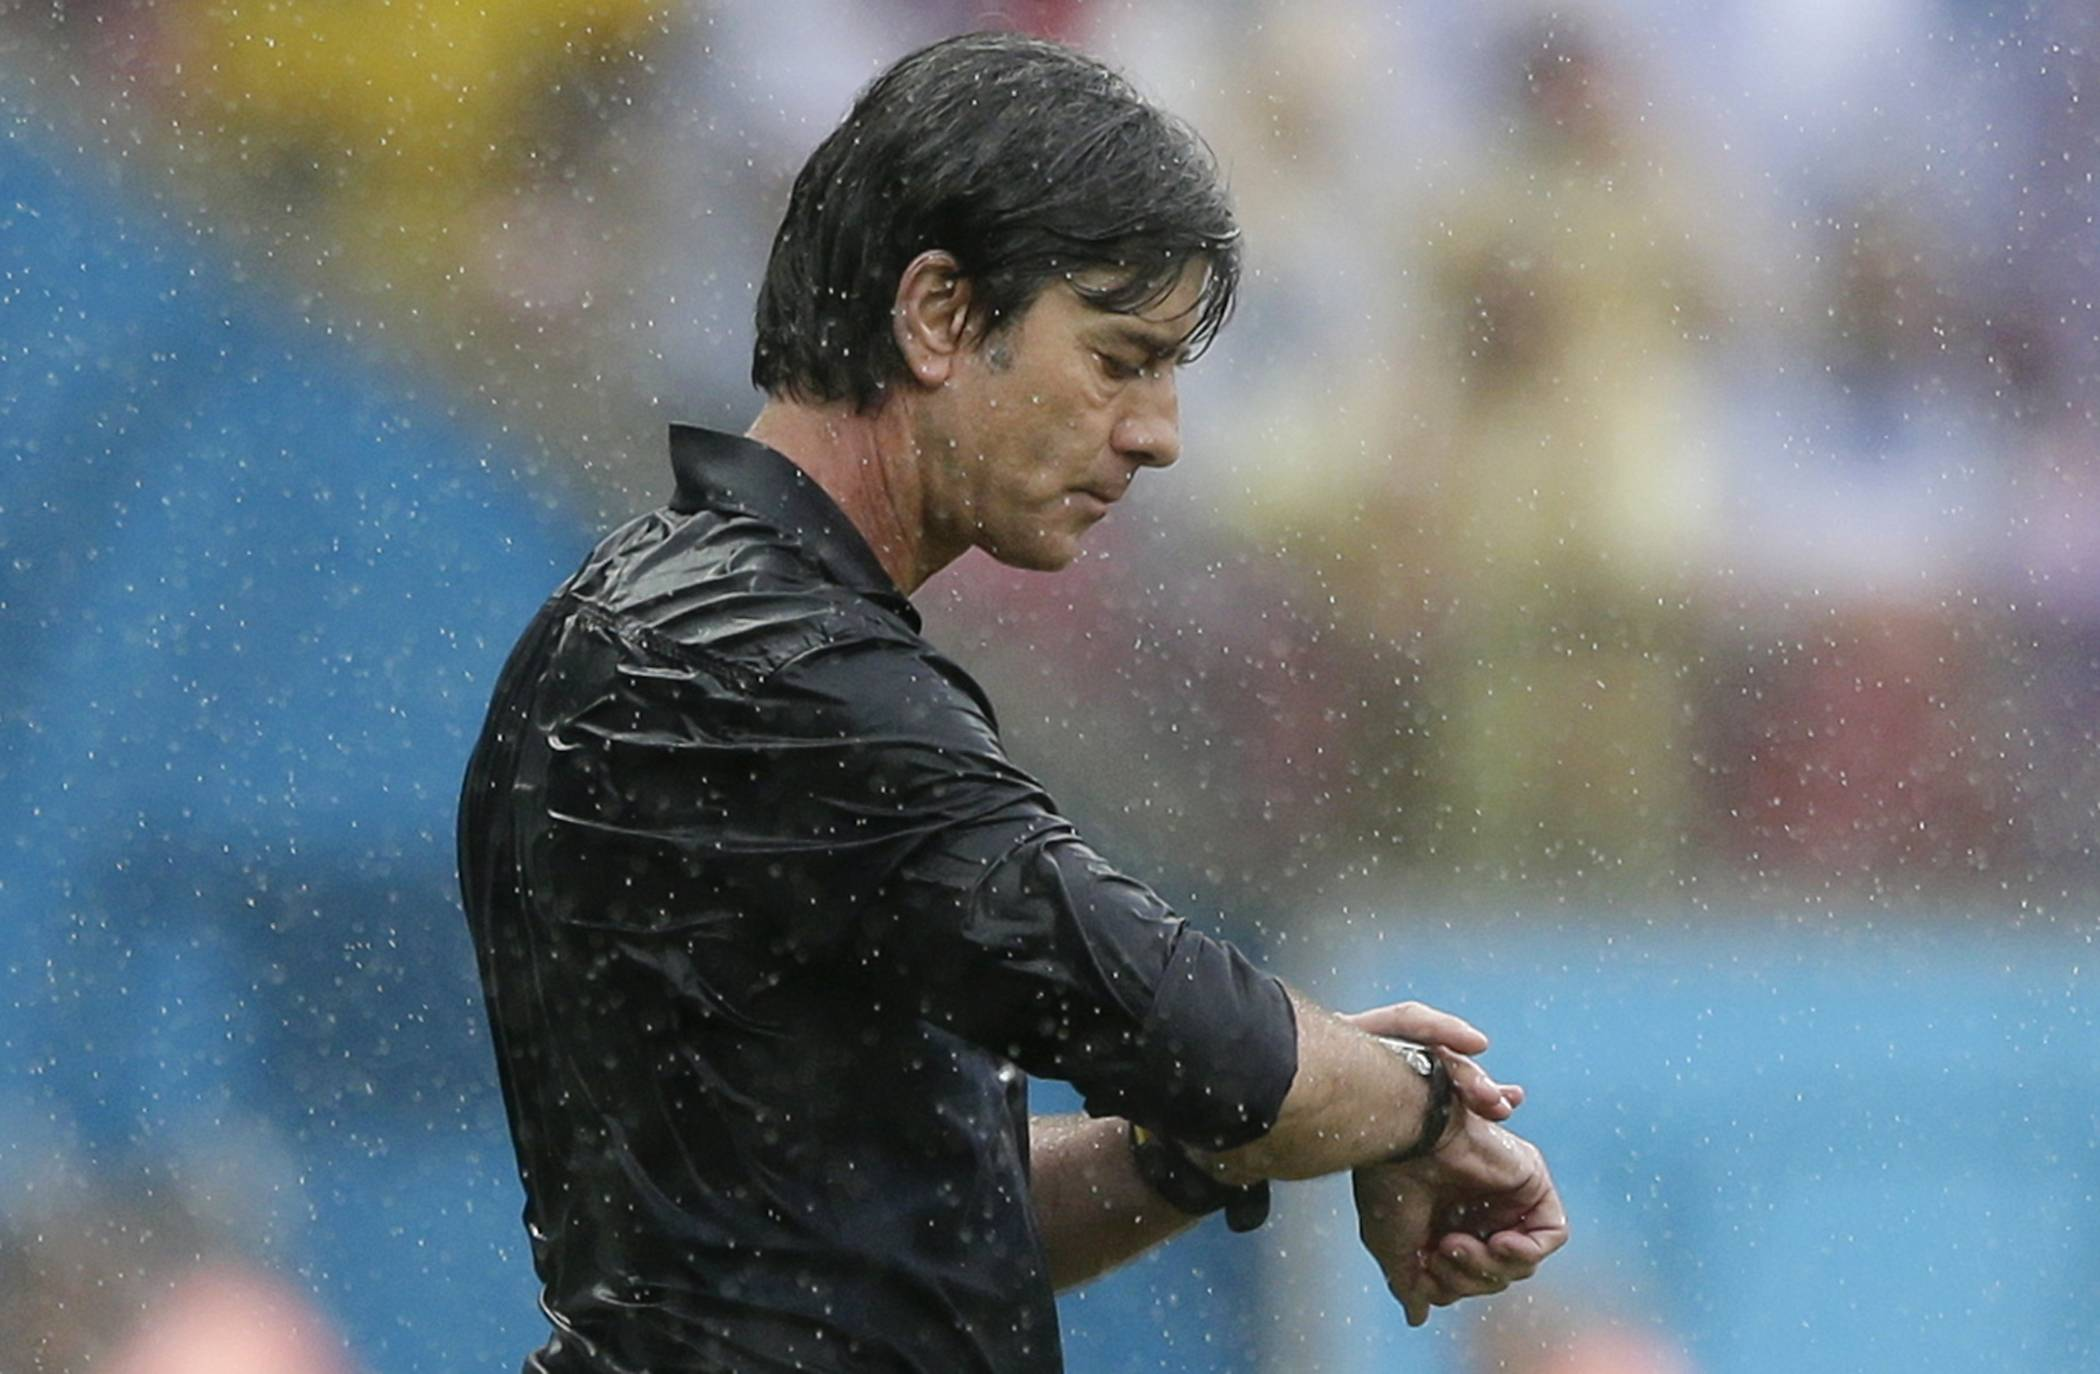 Germany's head coach Joachim Loew checks his watch during the group G World Cup soccer match between the USA and Germany at the Arena Pernambuco in Recife, Brazil, Thursday, June 26, 2014.